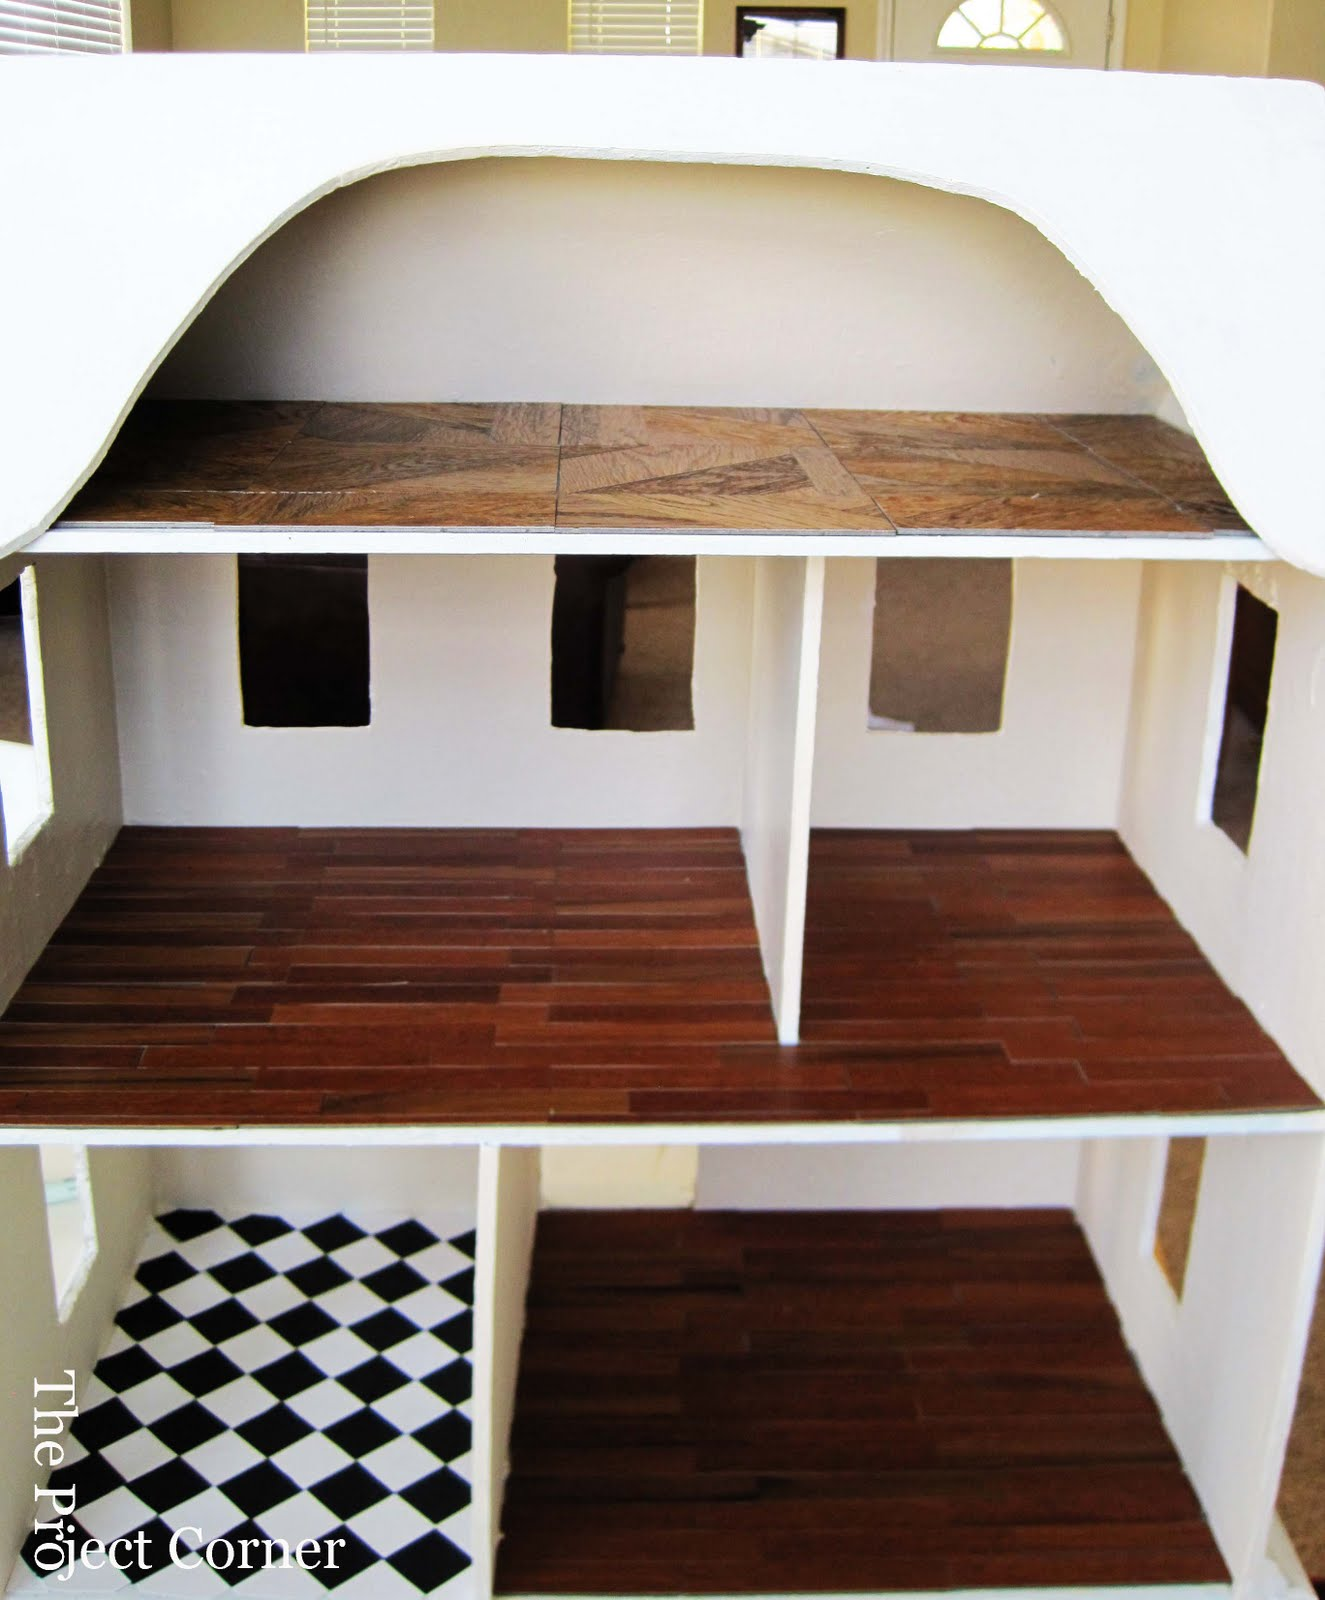 The Project Corner: Doll House Remodel-Part 3